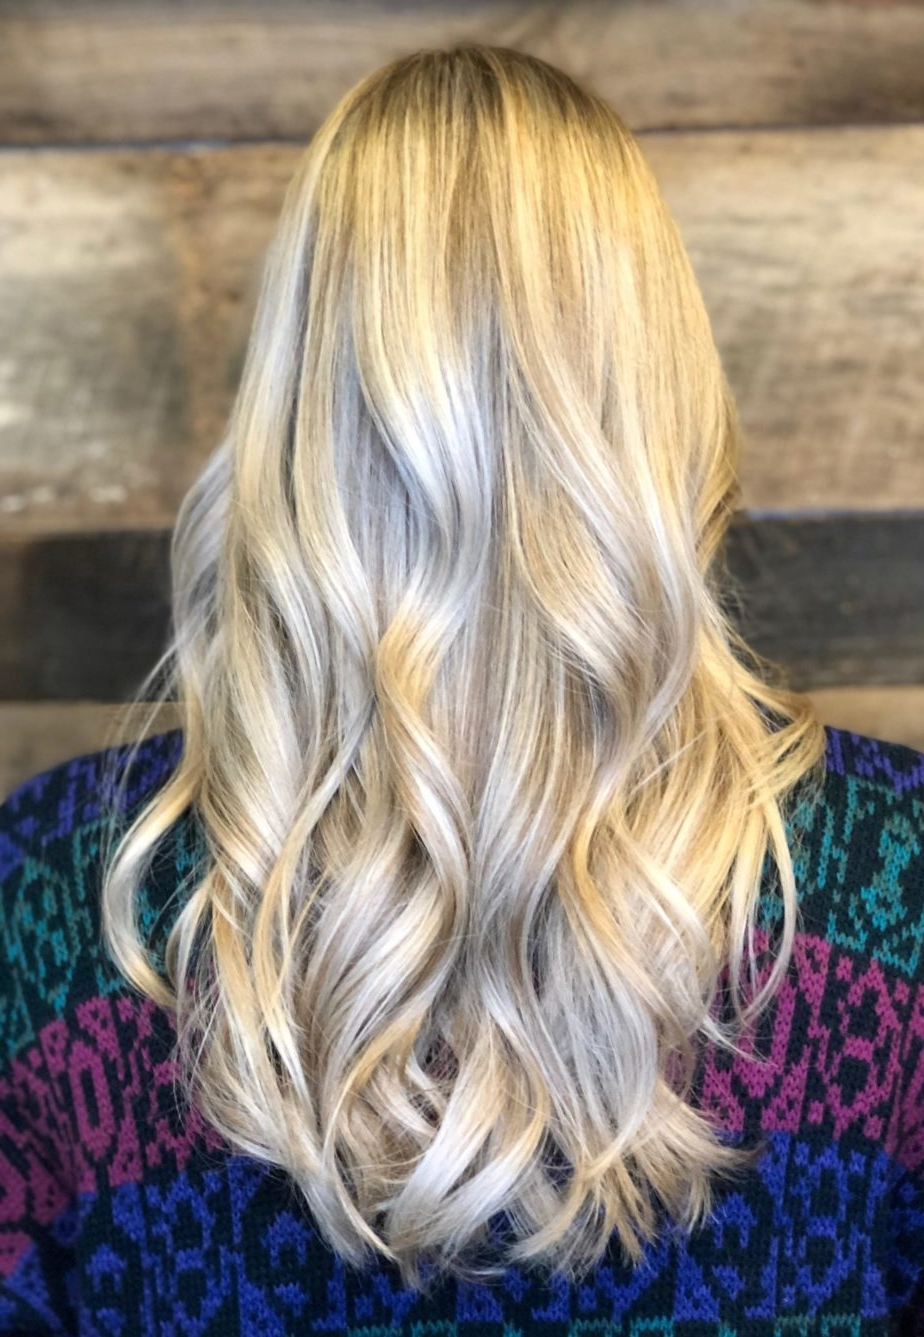 Well Liked Icy Highlights And Loose Curls Blonde Hairstyles Intended For Raleigh Hair Salon Best Reviews Icy Platinum Blonde Hair Color Long (View 17 of 20)